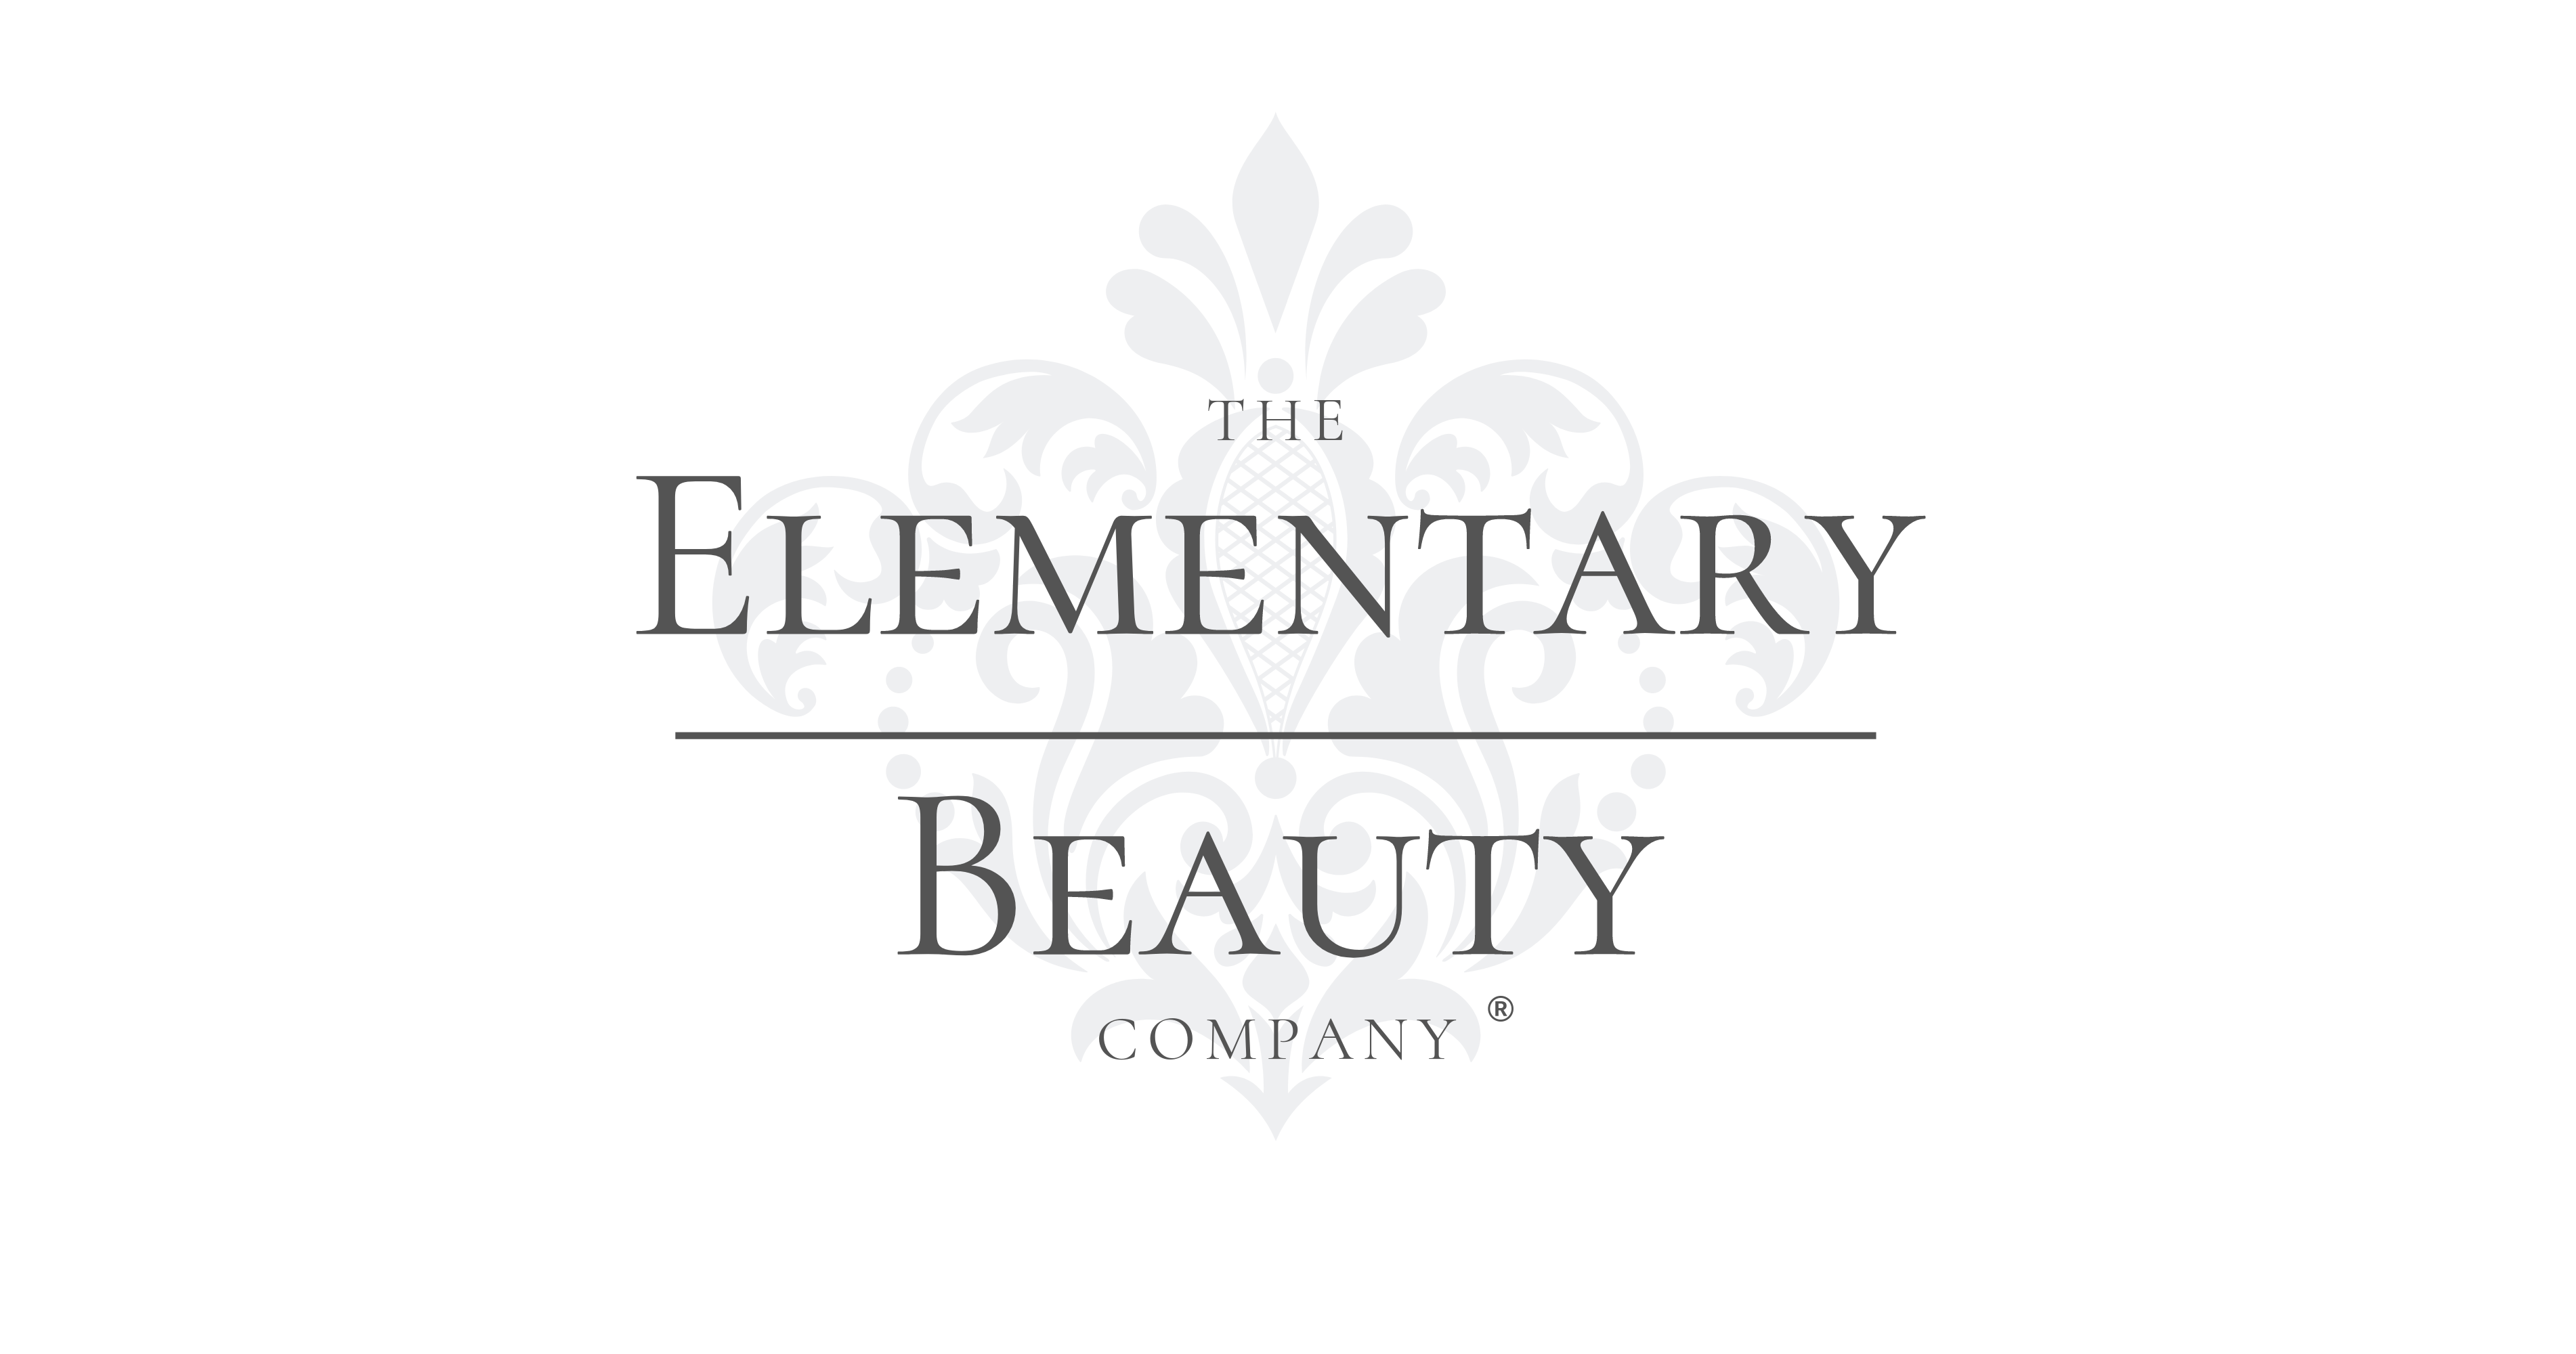 Read The Elementary Beauty Company Reviews